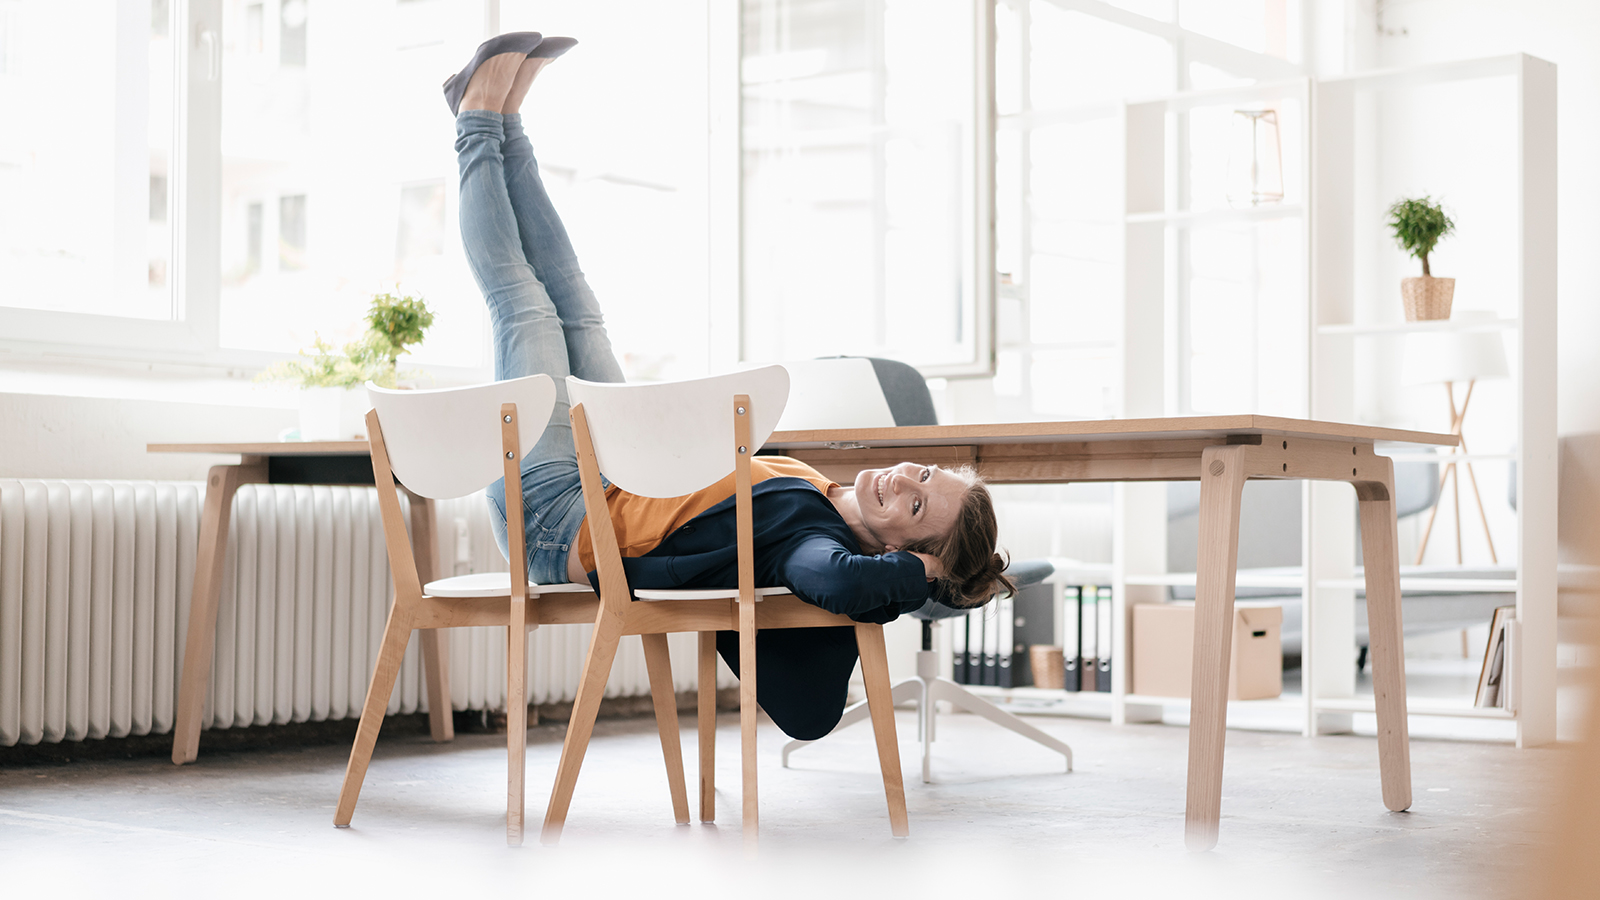 Move more, sit less: Great advice, but how can we make time for exercise?